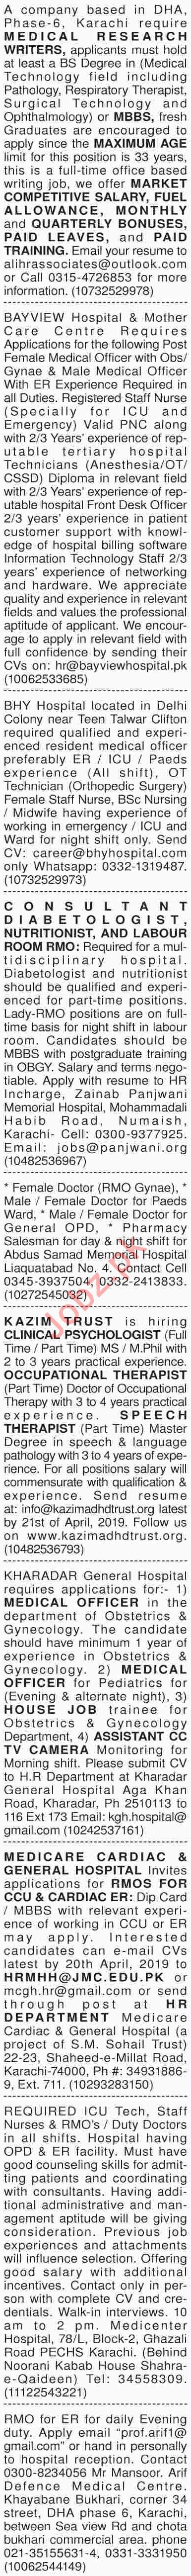 Dawn Sunday Classified Ads 14th April 2019 for Medical Staff